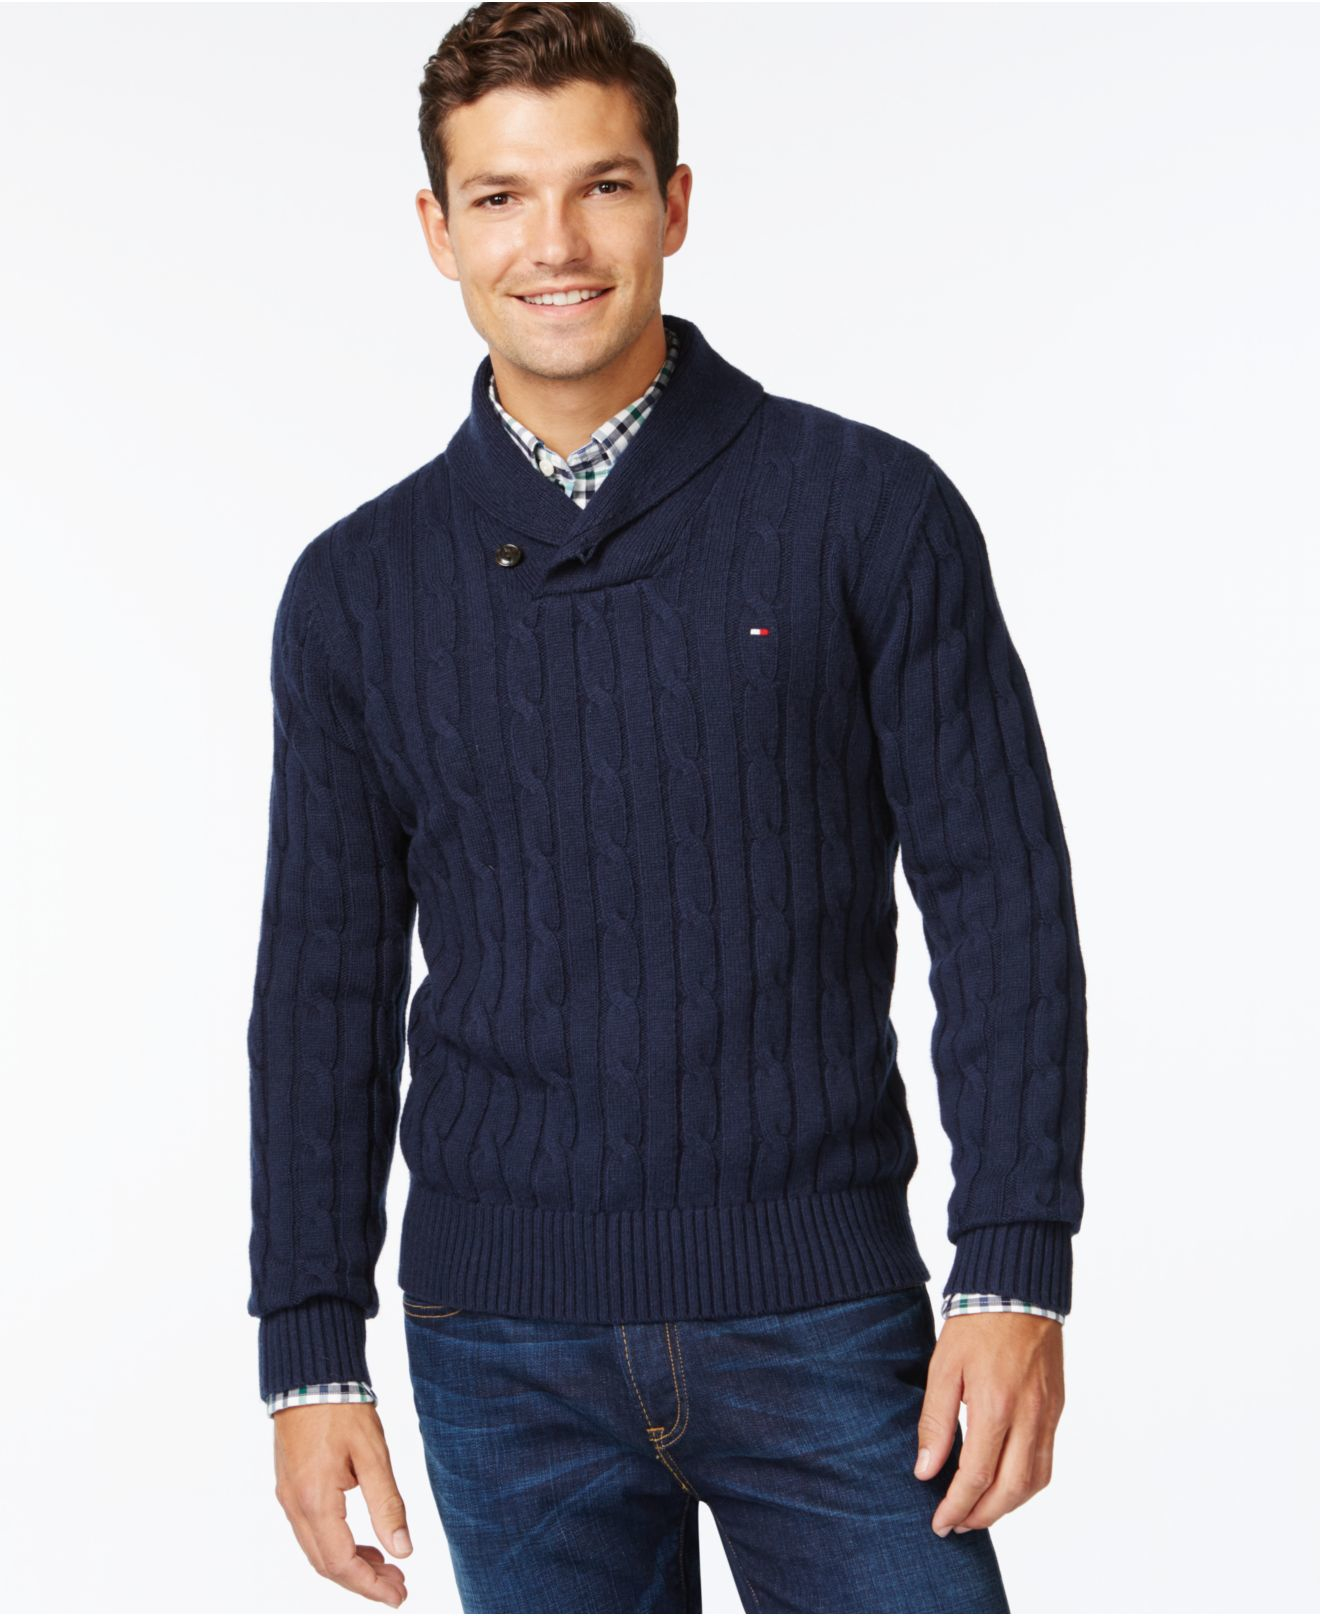 Sweaters With Big Collars